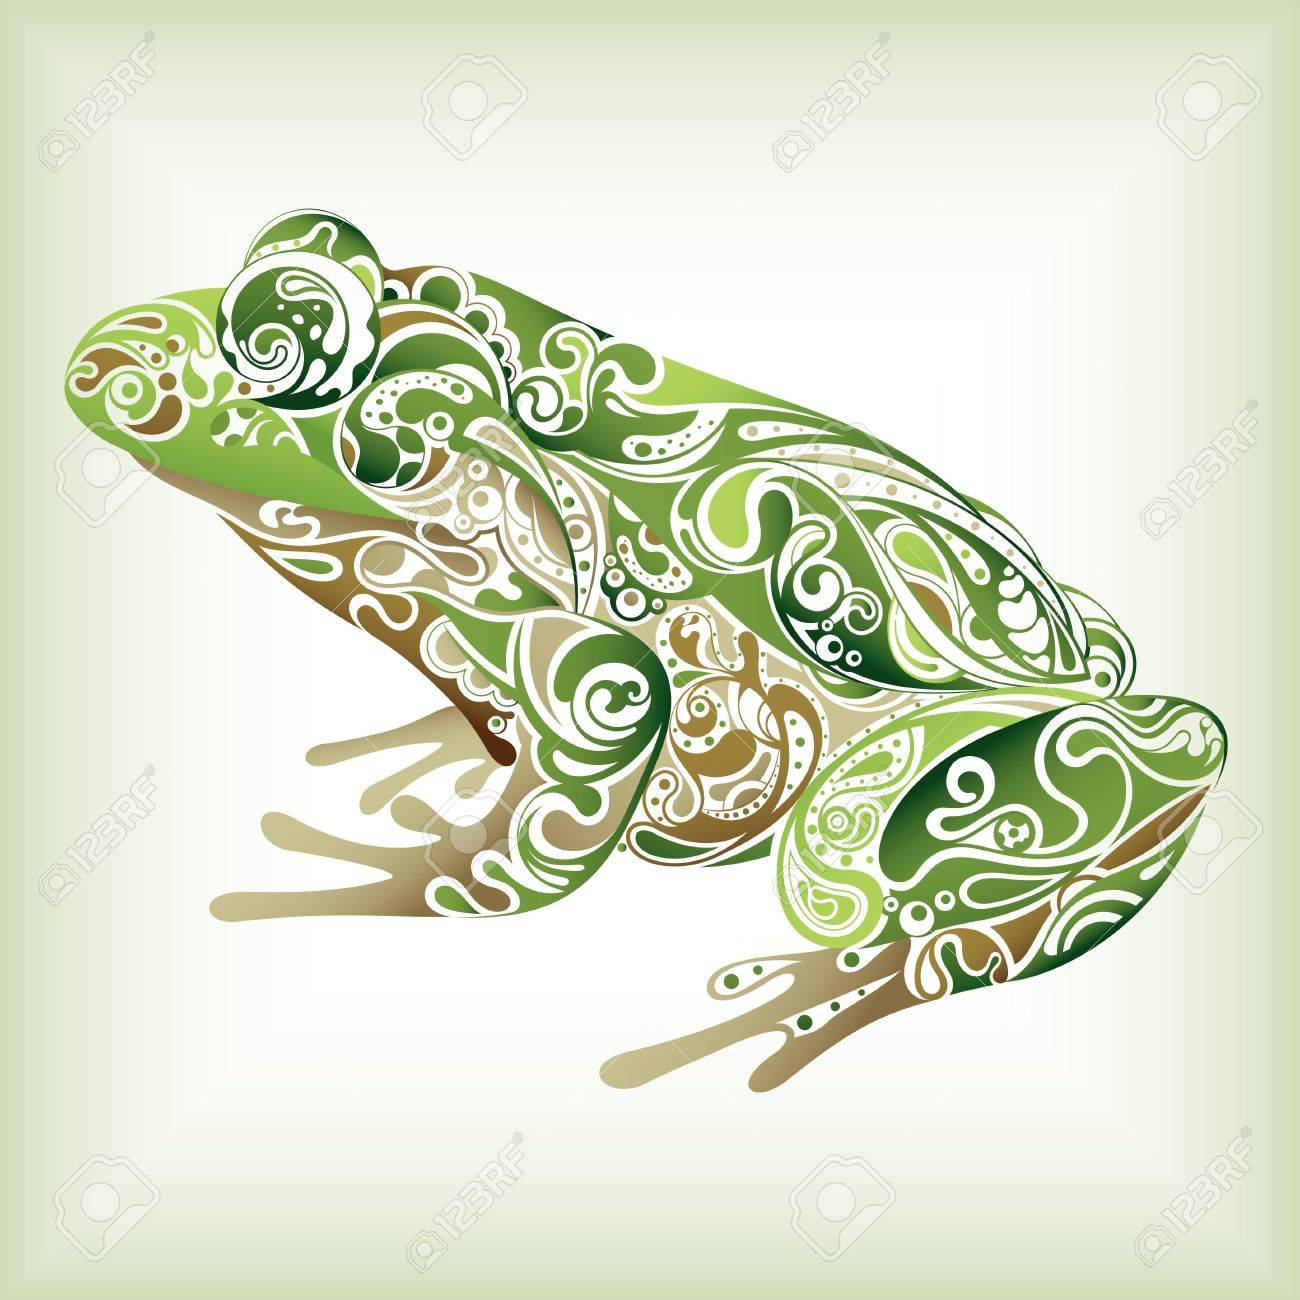 Abstract Frog Stock Vector - 12917604